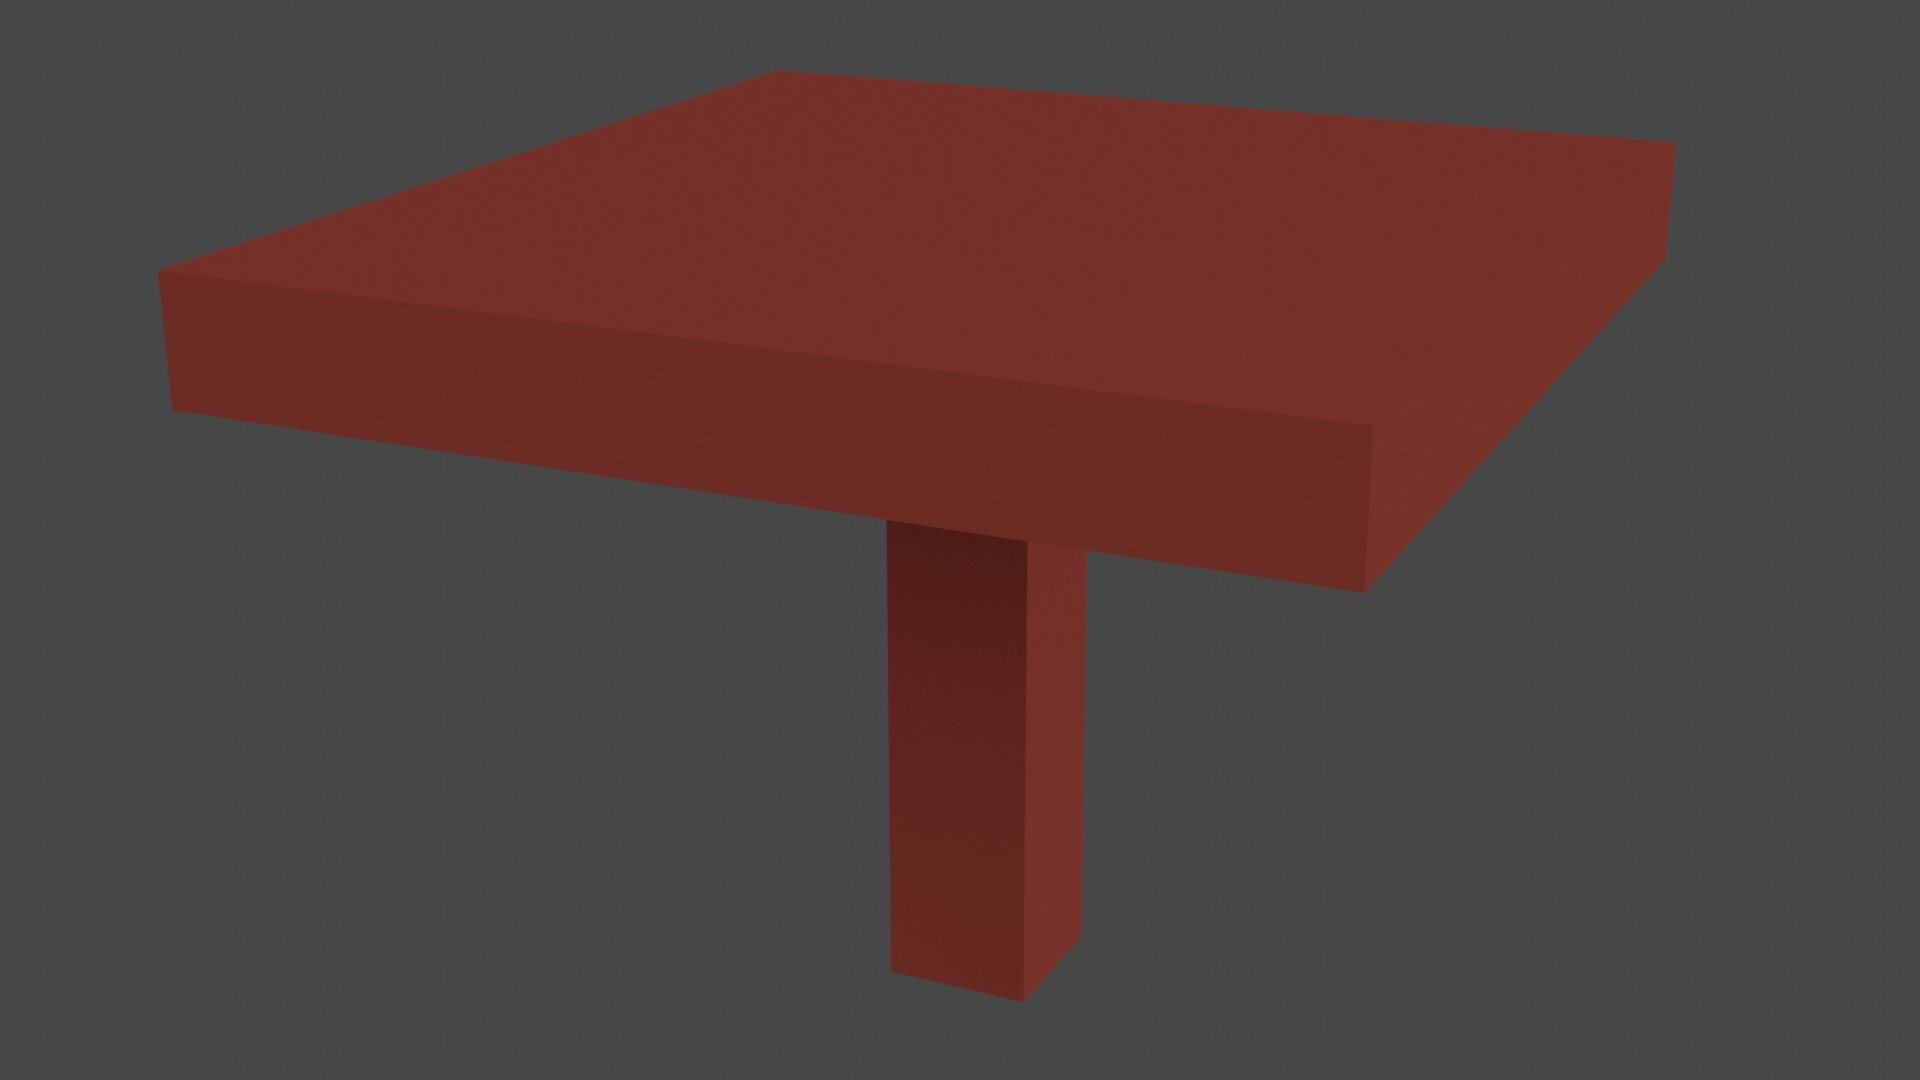 Low Poly Red Furniture 6